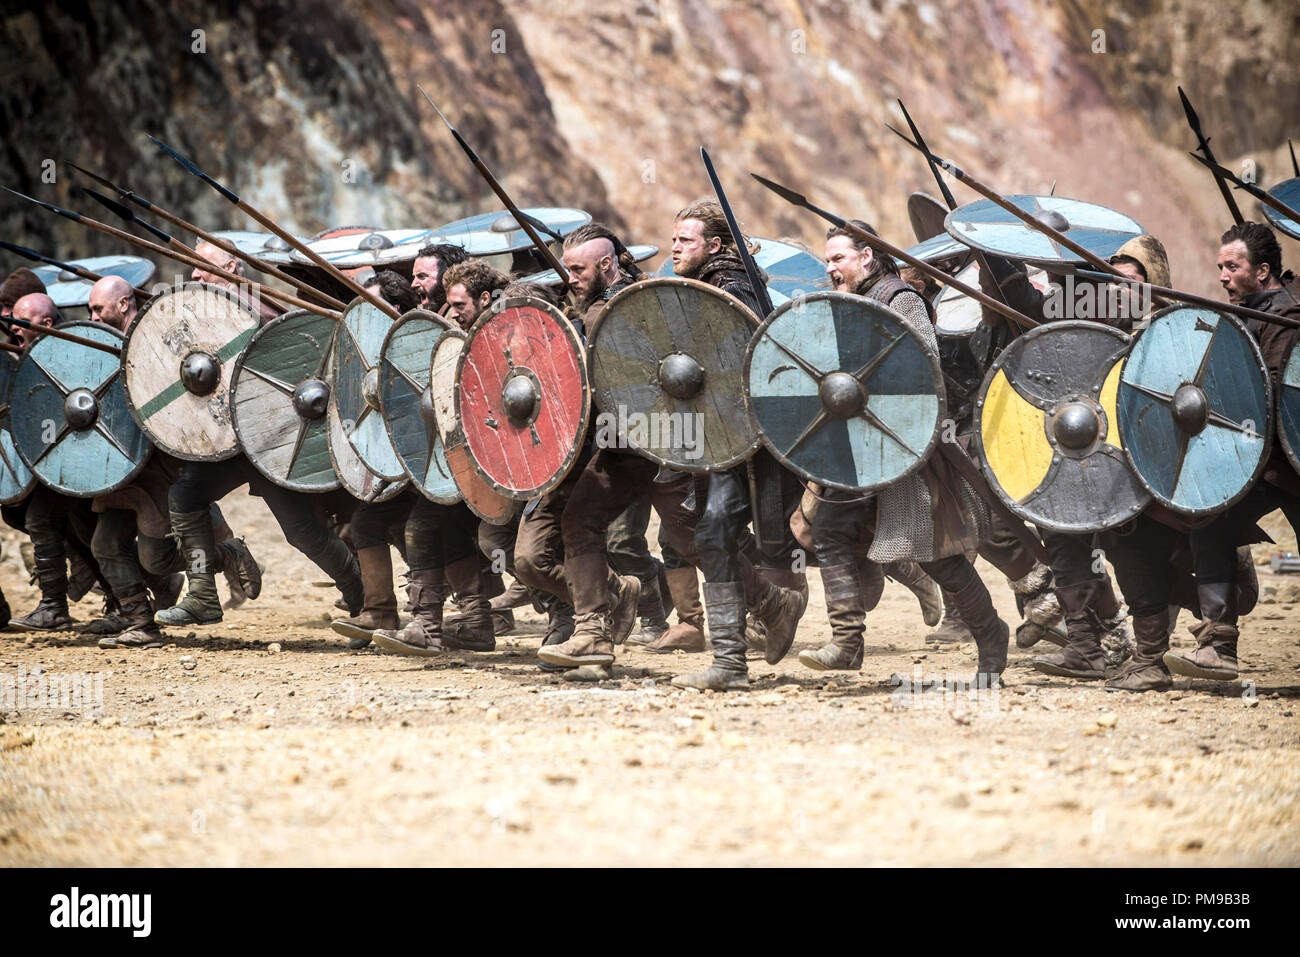 'Vikings' Season 2 (2014)  Ragnar's army charges into battle - Stock Image